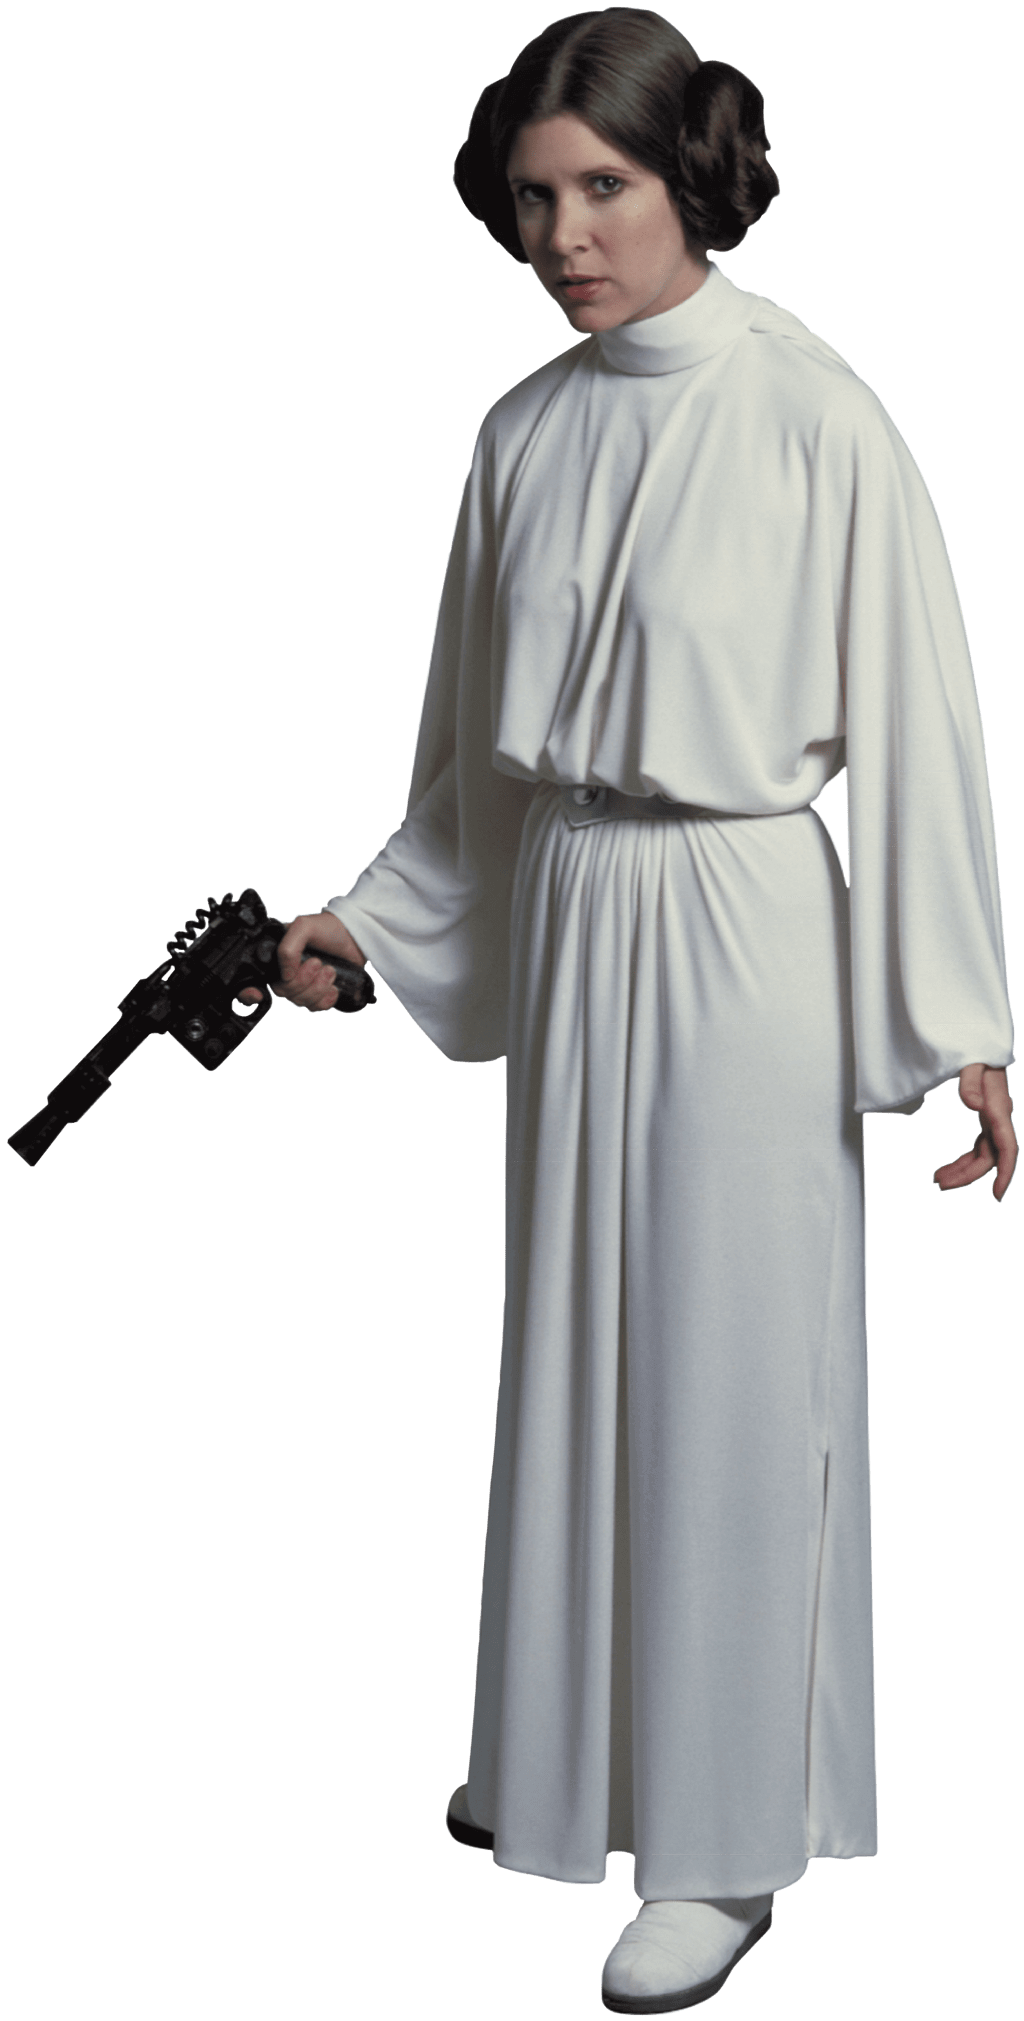 Starwars clipart princess leia. Standing transparent png